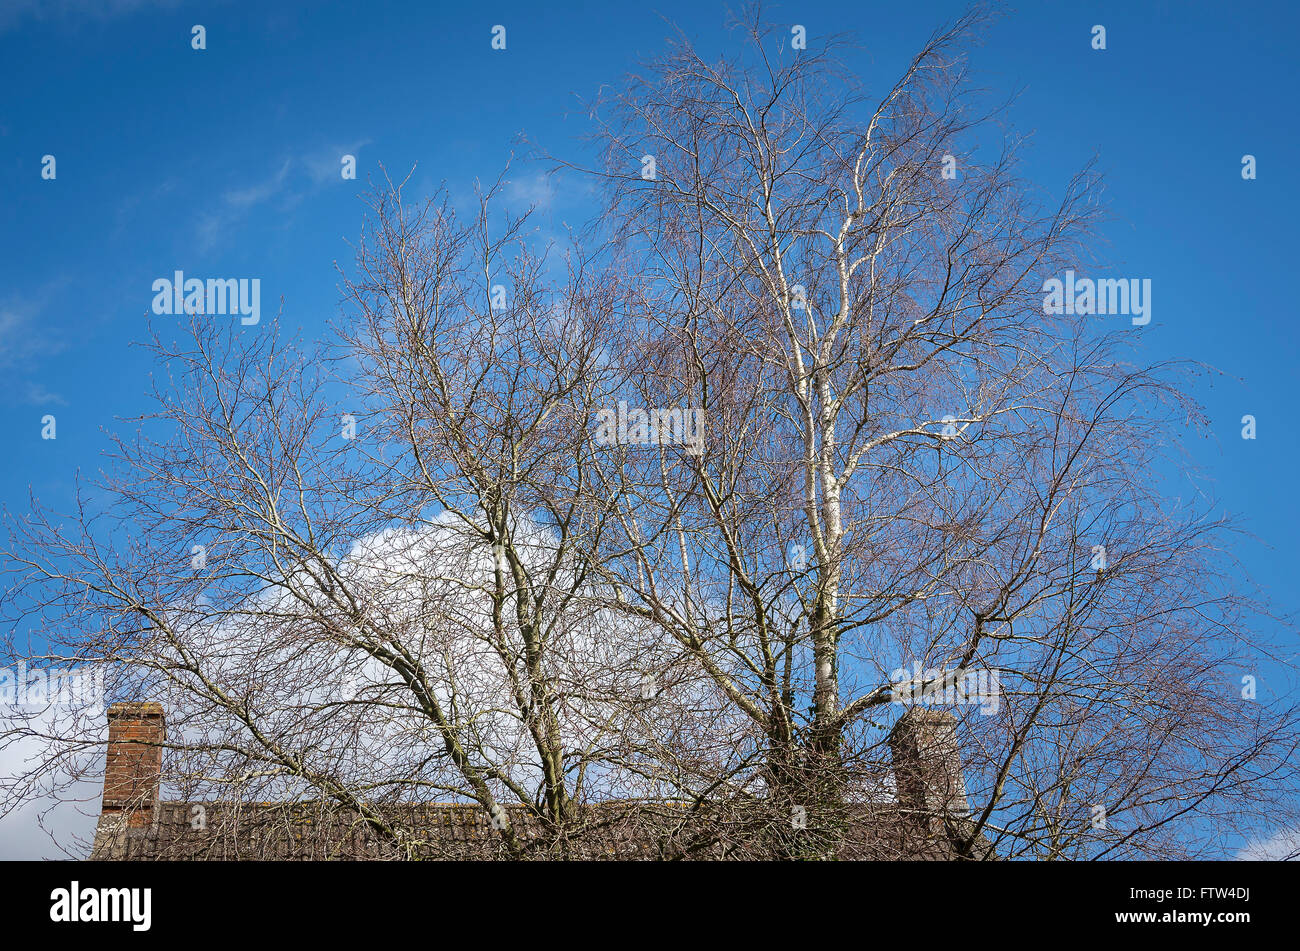 Leafless silver birch tree in early Spring in a village garden in UKreaching for the sky - Stock Image